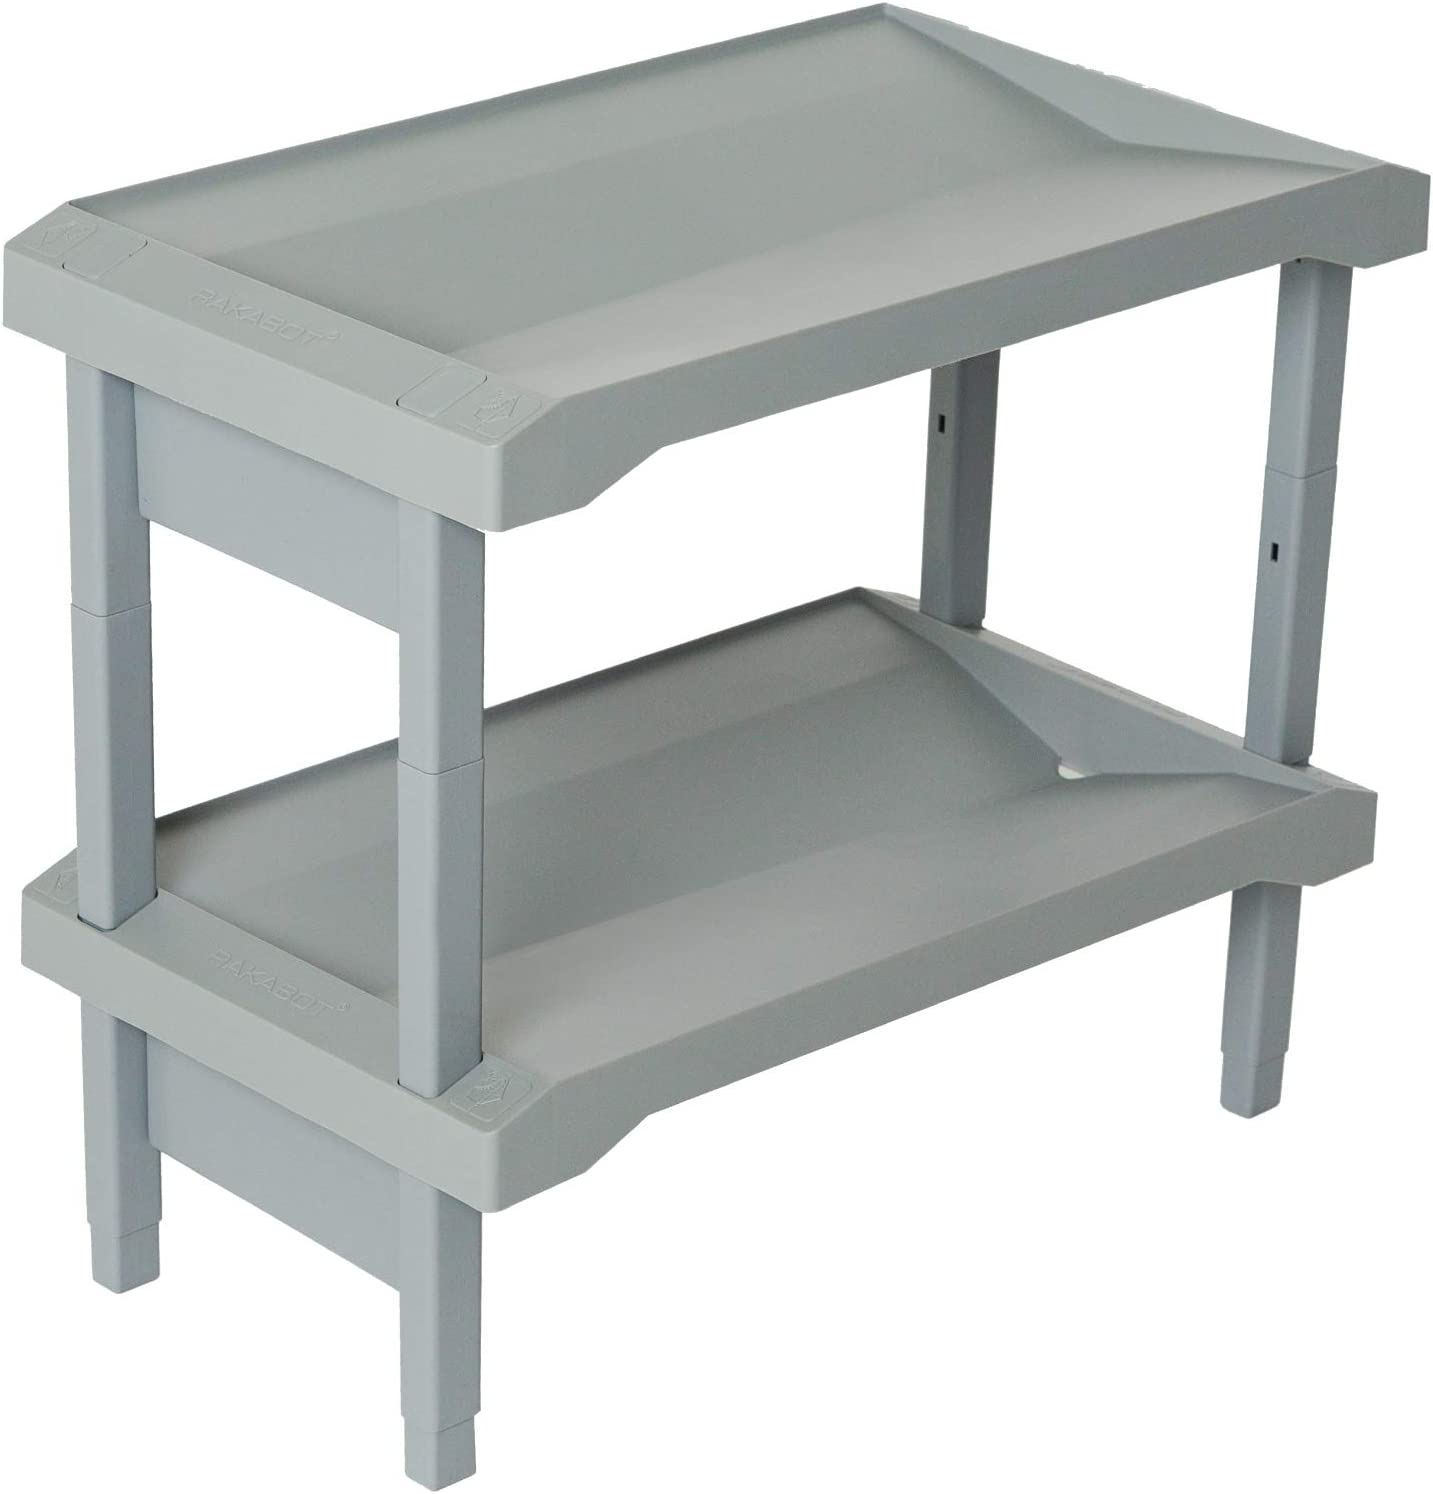 Water Collecting Unique Shoe and Boot Rack for Home 23.5 Inches 2 Levels Store up to 6 Pairs of Shoes